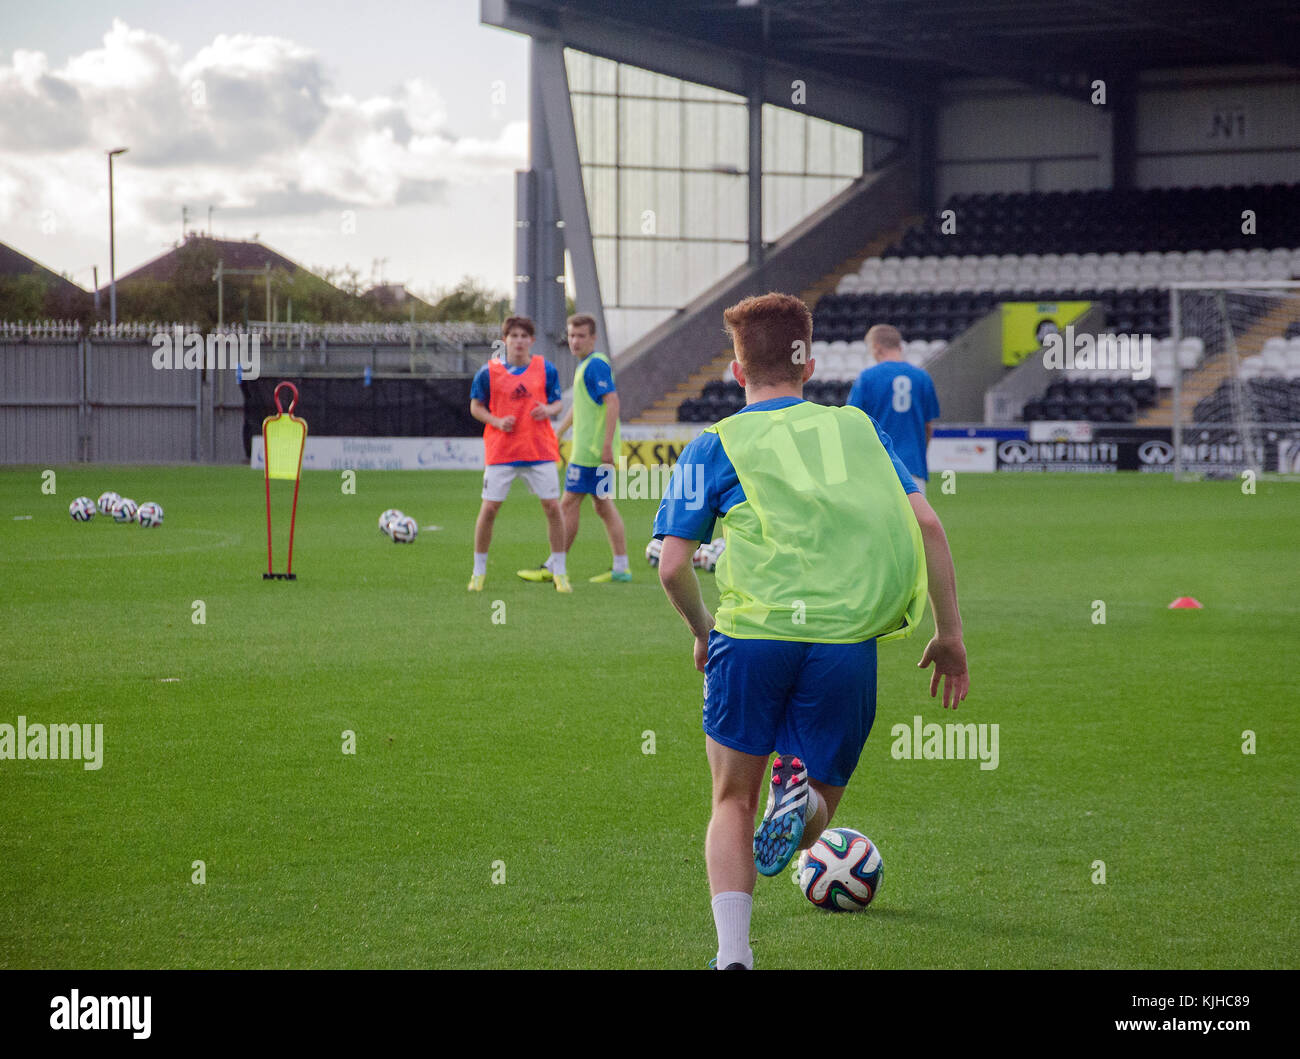 GLASGOW, Scotland, UK - SEPTEMBER 05 2014: A youth footballer taking part in a coaching session. - Stock Image